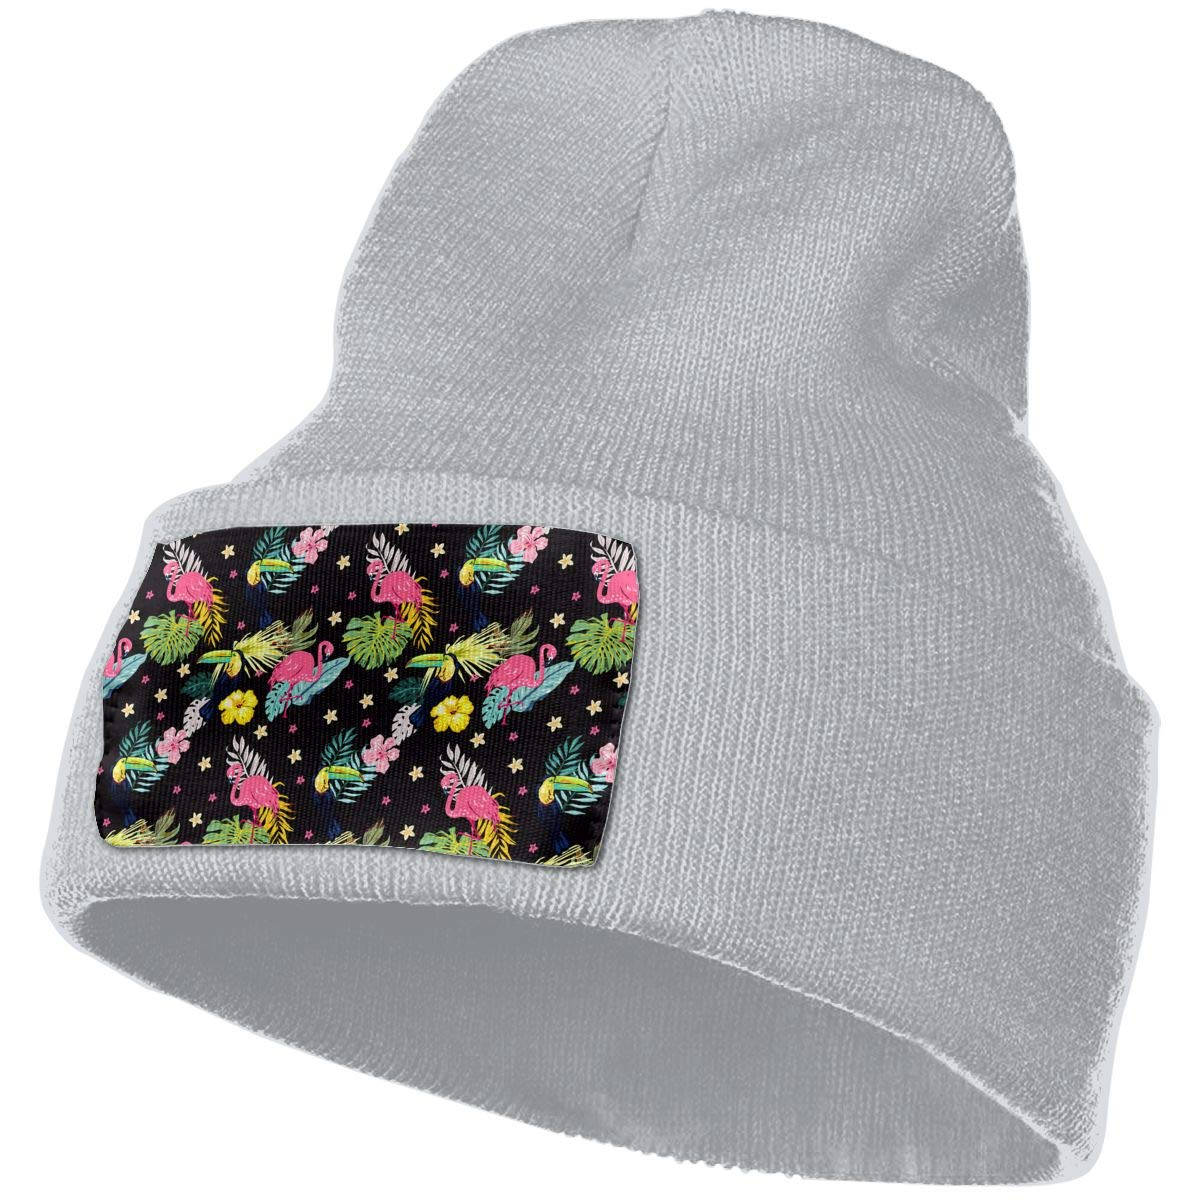 The Bird of The Tongue and Flamingos Unisex Fashion Knitted Hat Luxury Hip-Hop Cap